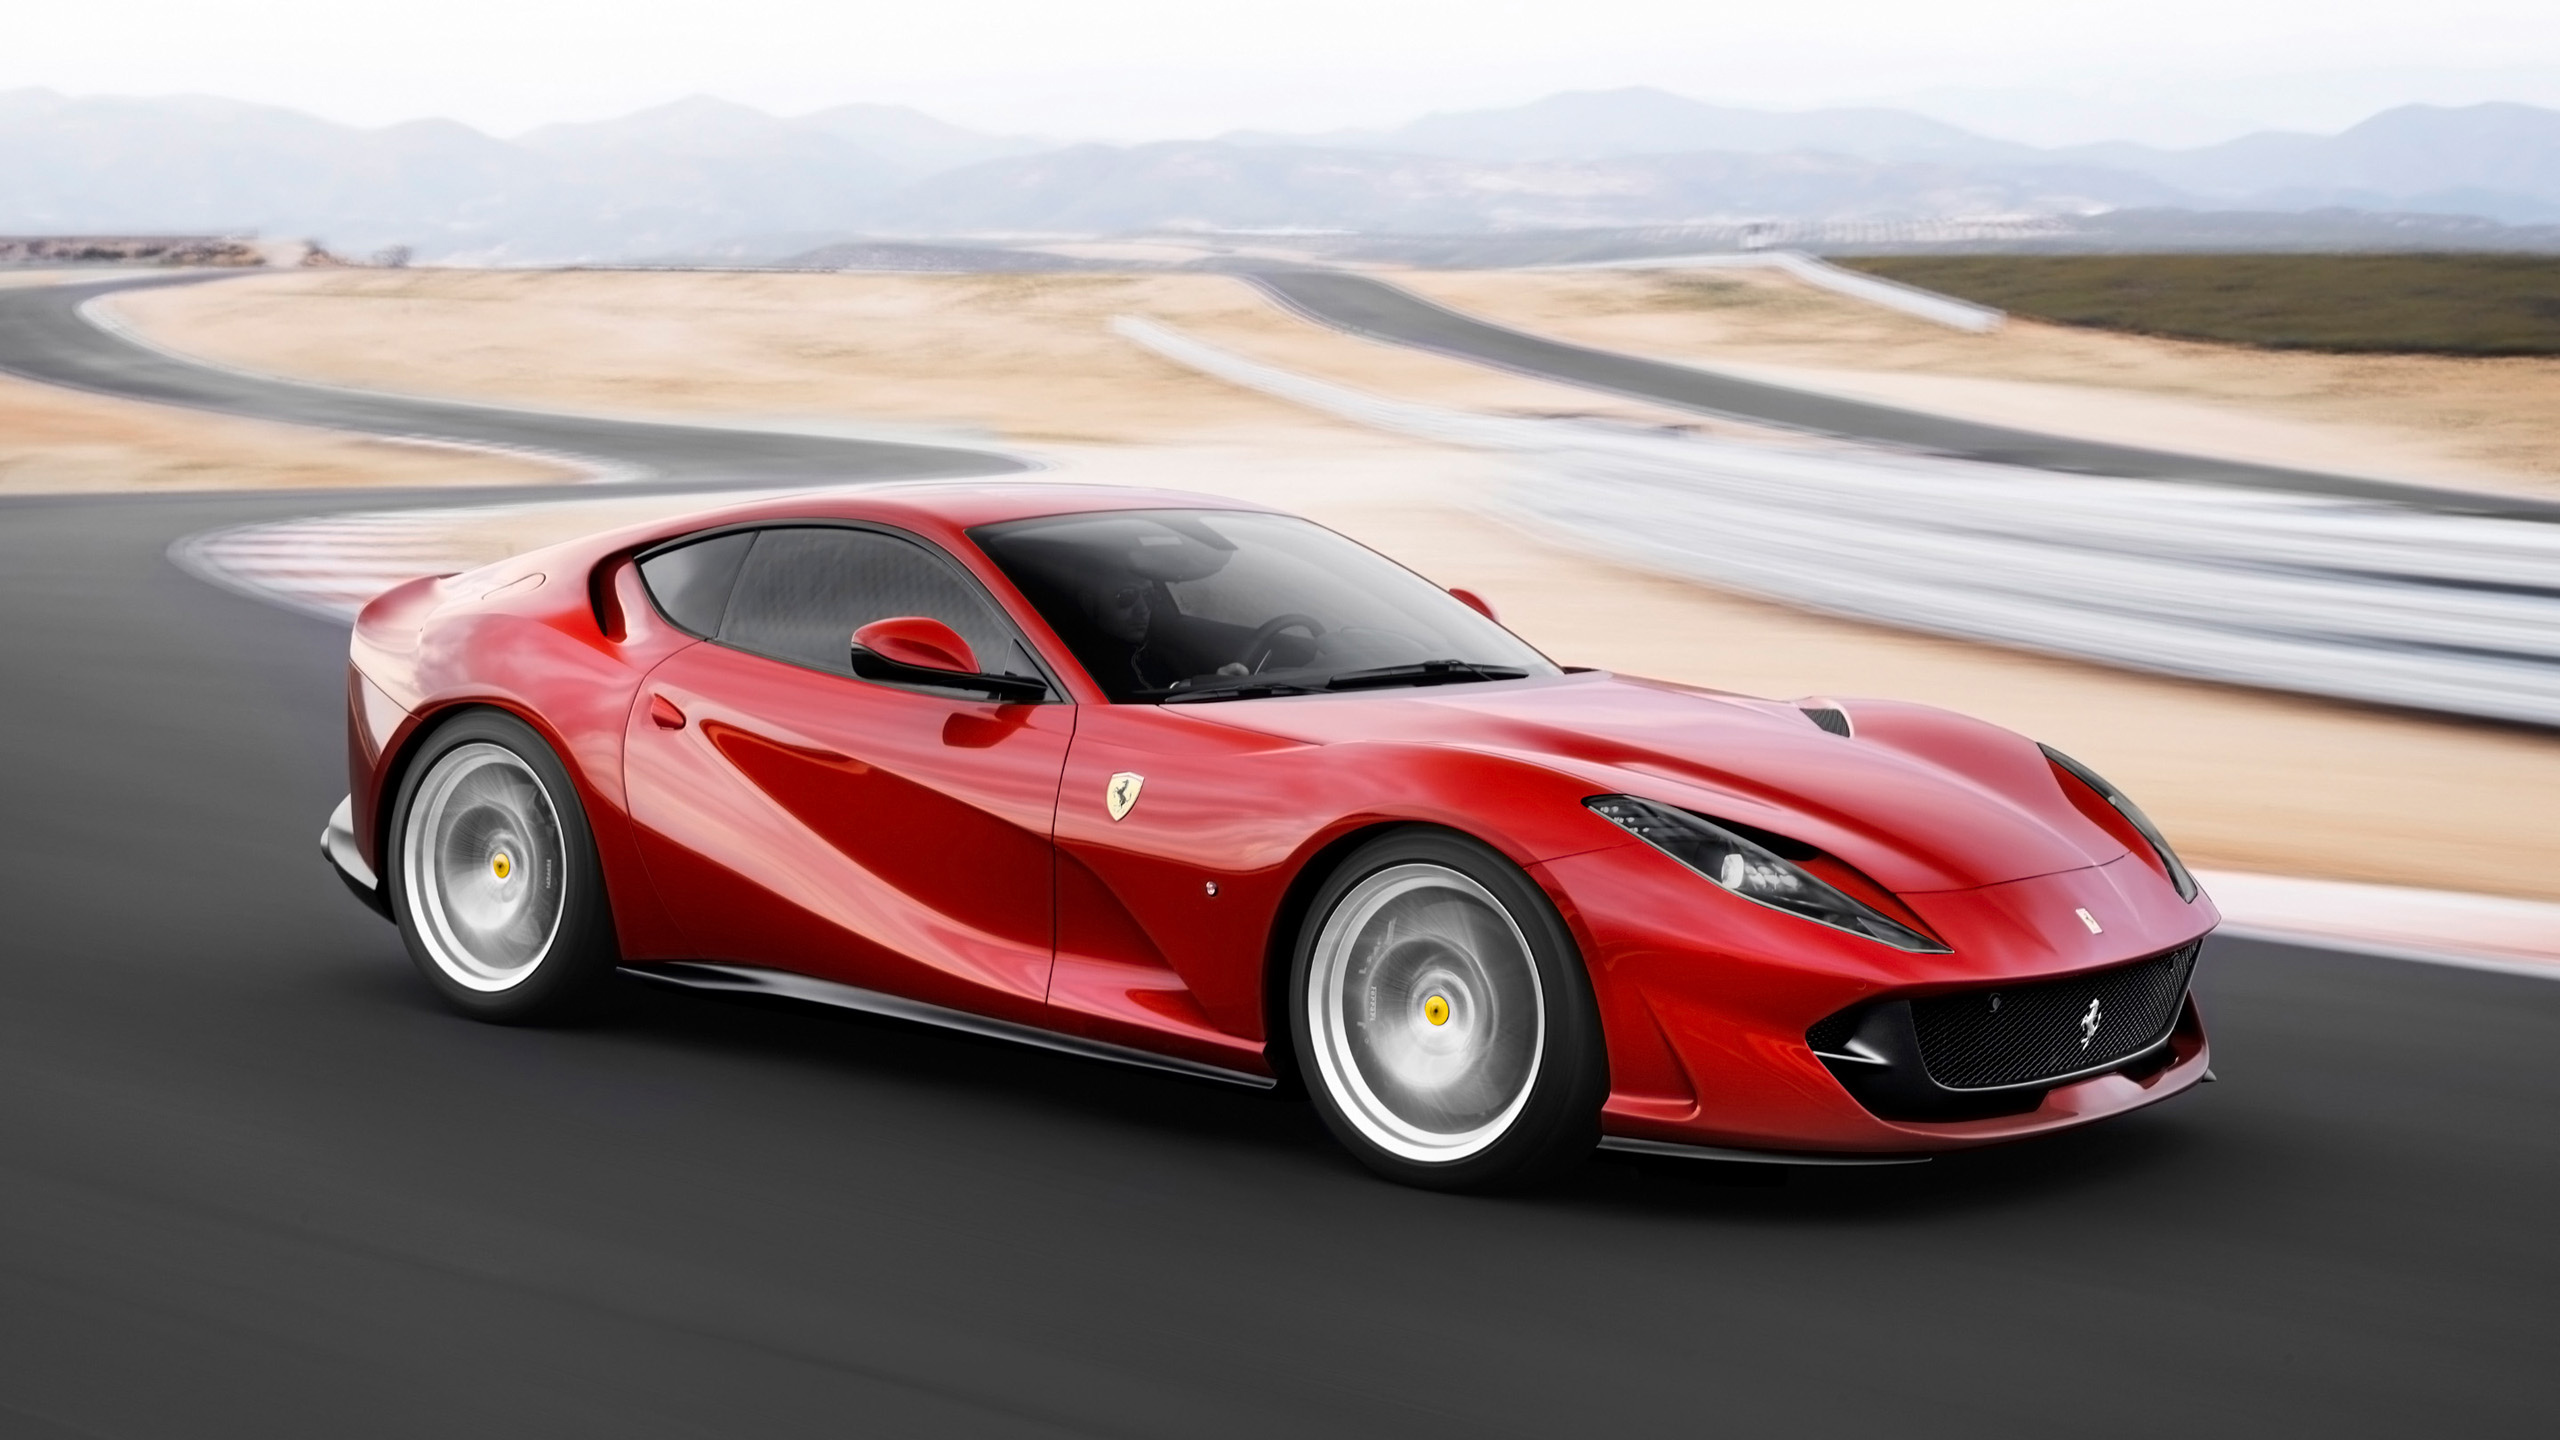 Ferrari 812 Superfast 2017 Wallpaper Hd Car Wallpapers Id 7601